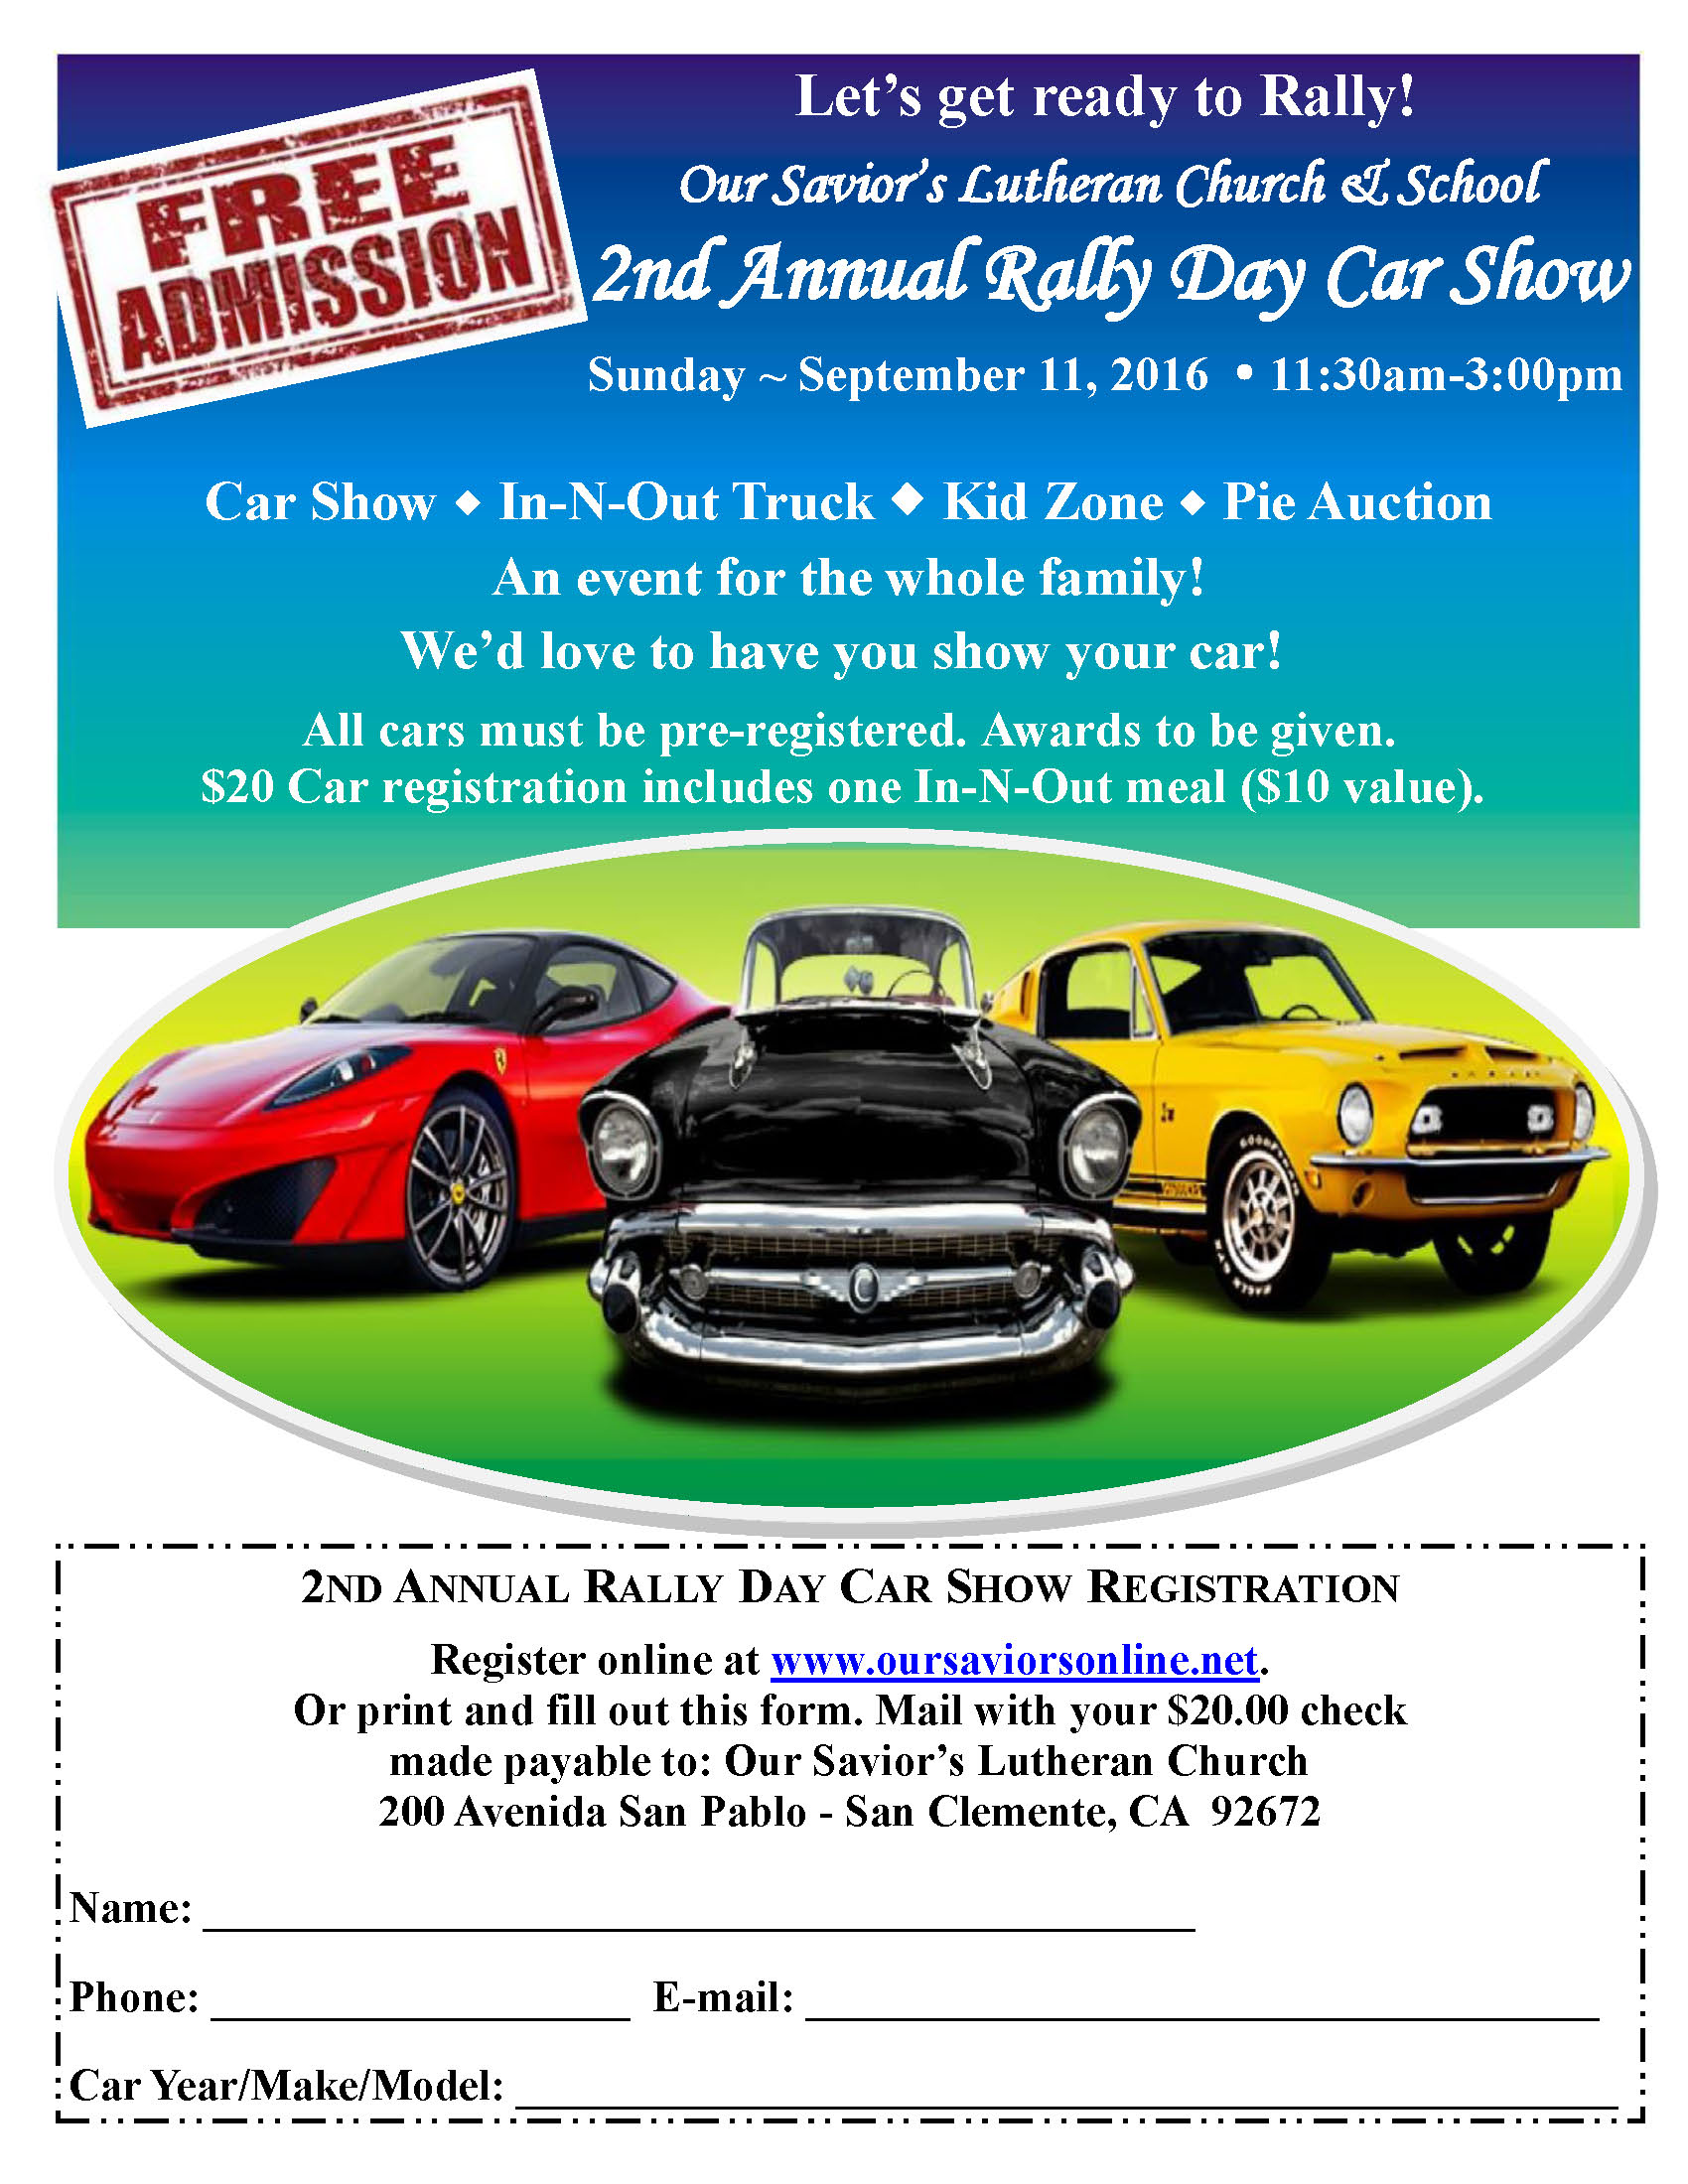 2nd Annual Rally Day Car Show - San Clemente Chamber of Commerce, CA